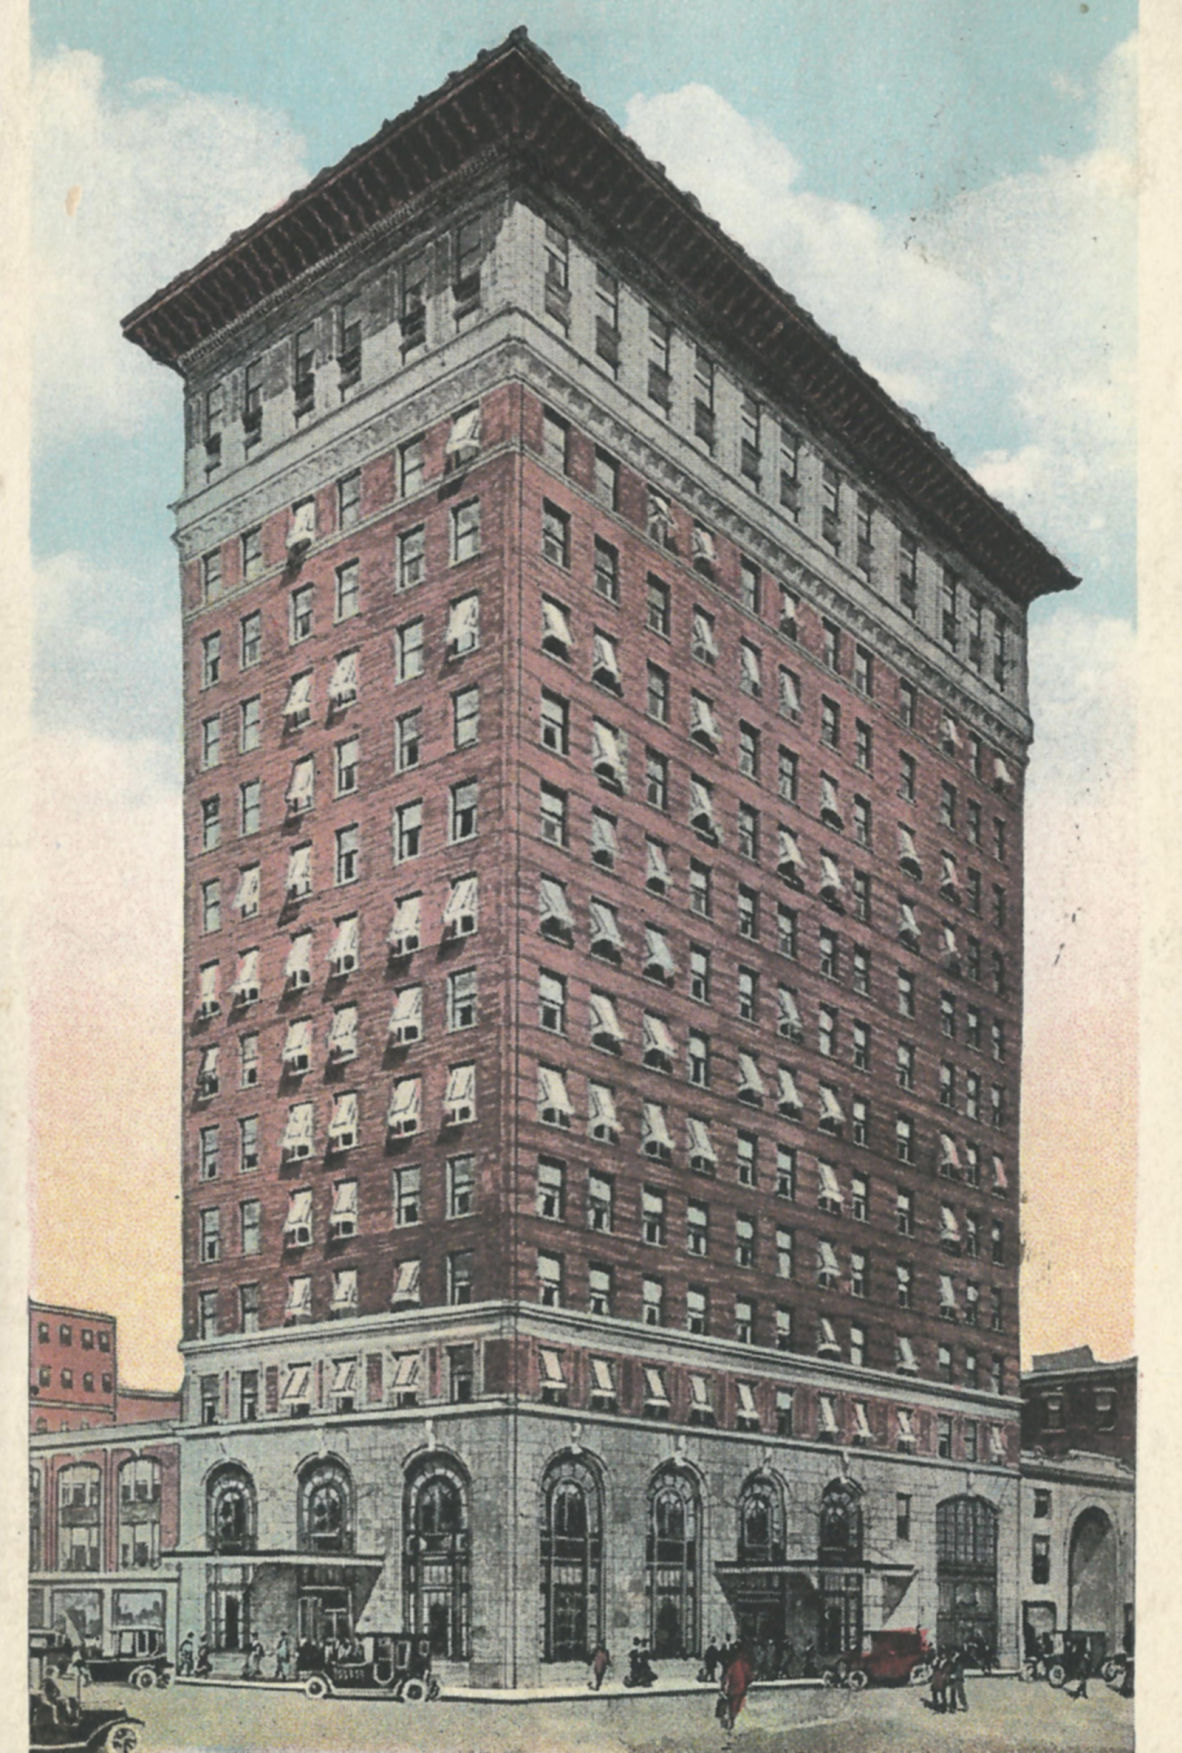 Postcard of the building as John S. Farr originally planned, with 14 stories. Photo courtesy of James E. Casto.